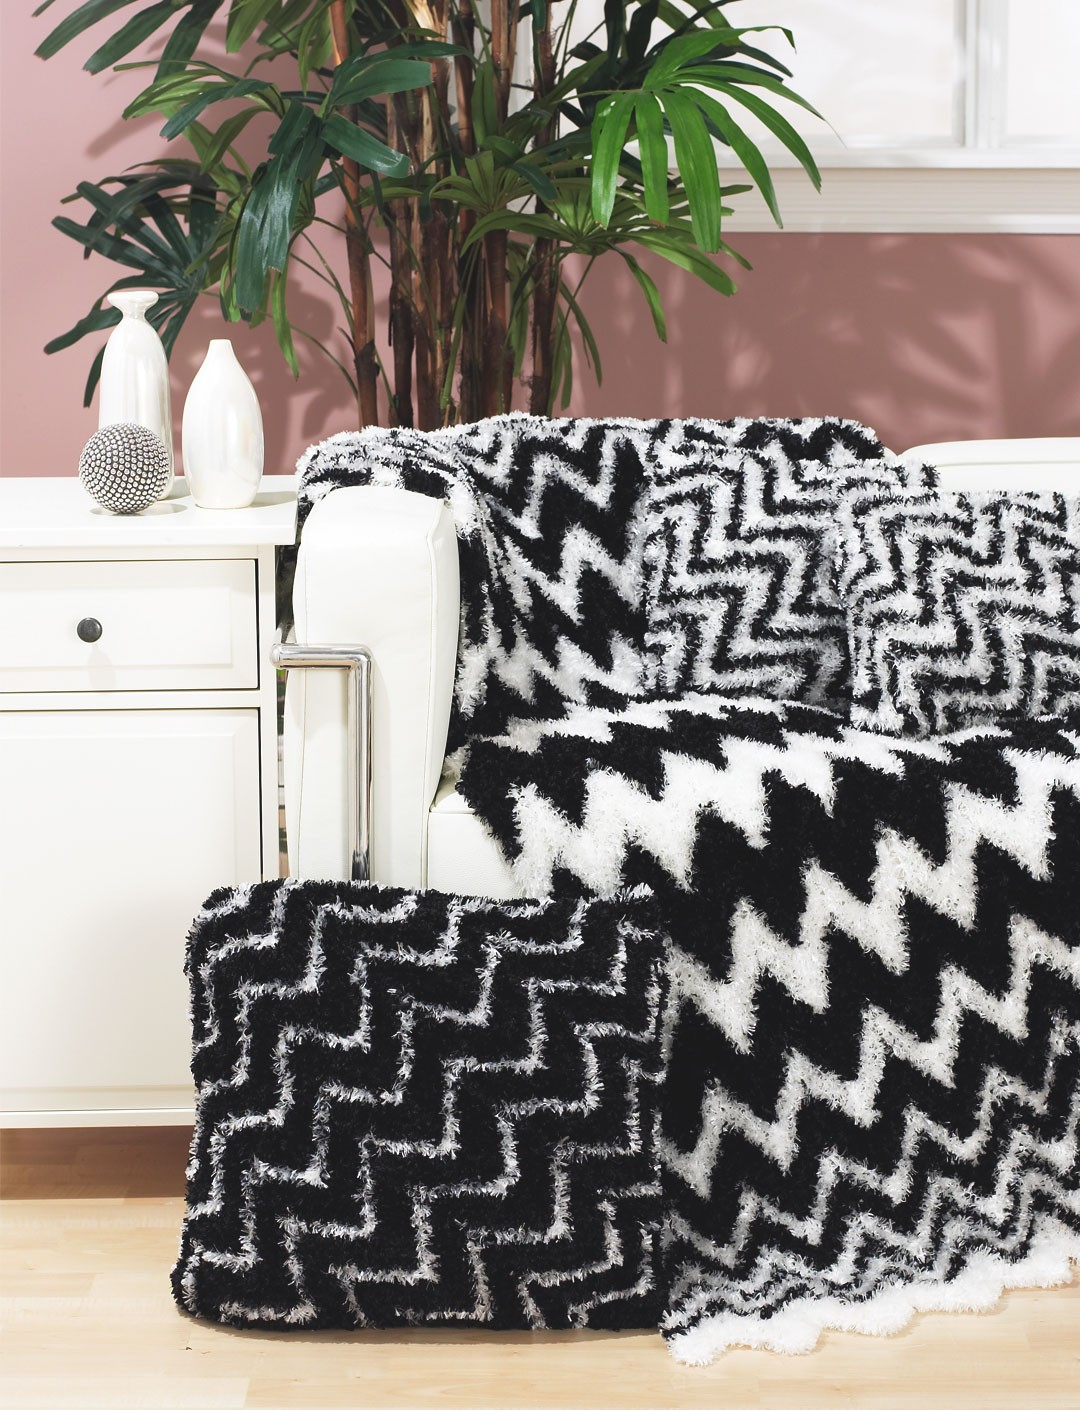 Bernat Zebra Throw and Pillows Yarnspirations